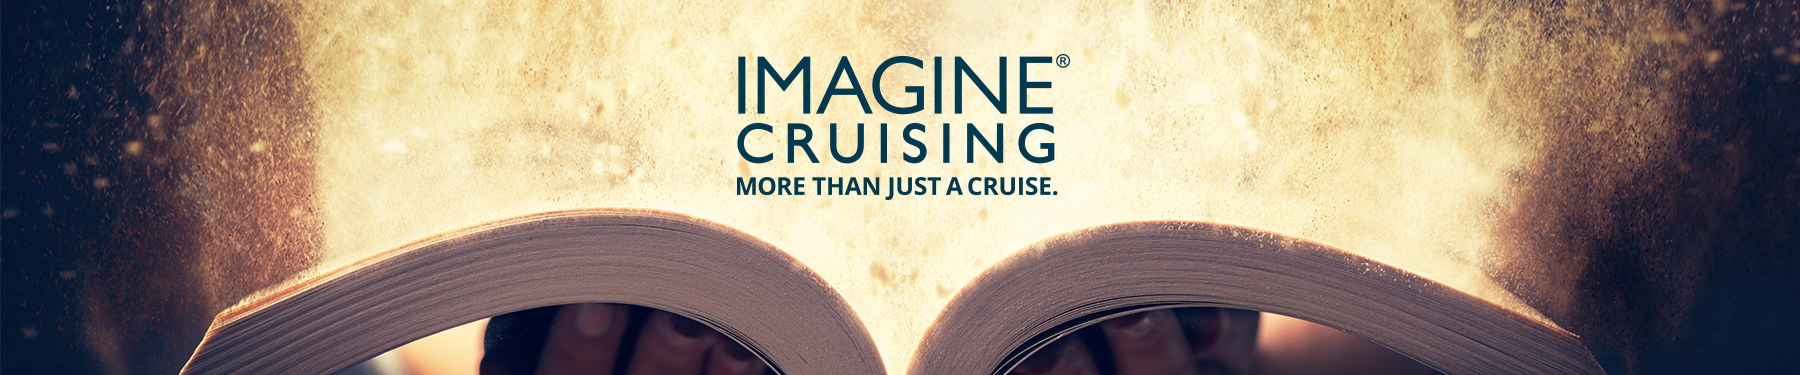 Cruise Deals From Imagine Cruising, Book Your 2019/2020